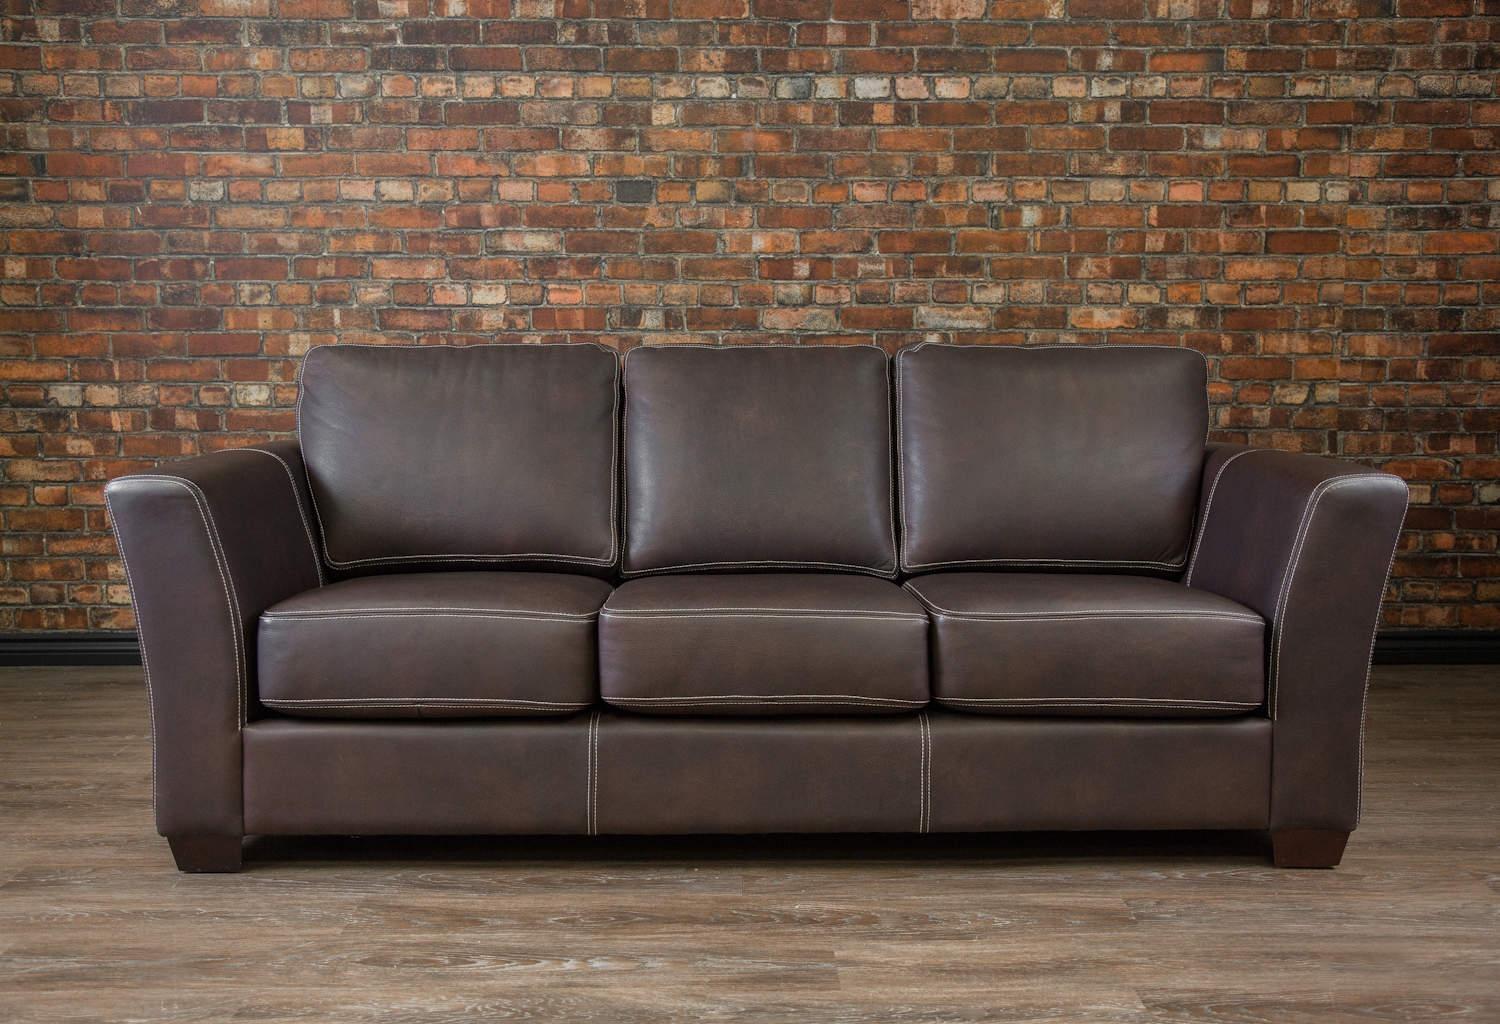 The Aspen Collection (Sofa) | Canada's Boss Leather Sofas And In Aspen Leather Sofas (View 15 of 20)